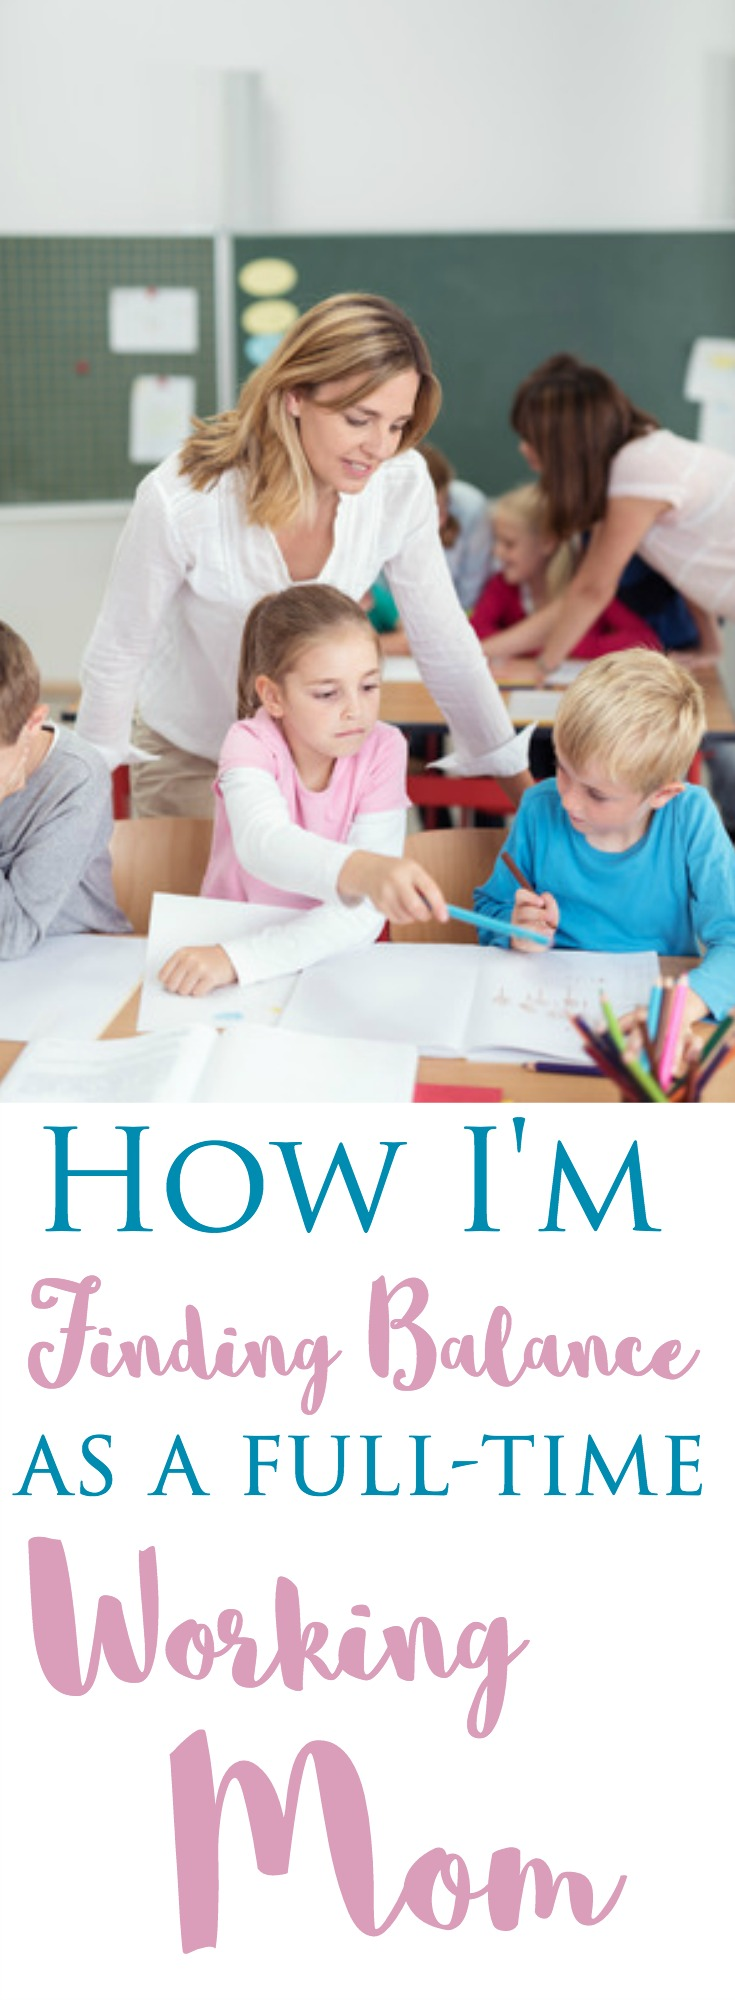 Working Mom in Balance | How I'm living joyfully even though working outside the home isn't my first choice. I'm proud of being a full-time mom and employee!